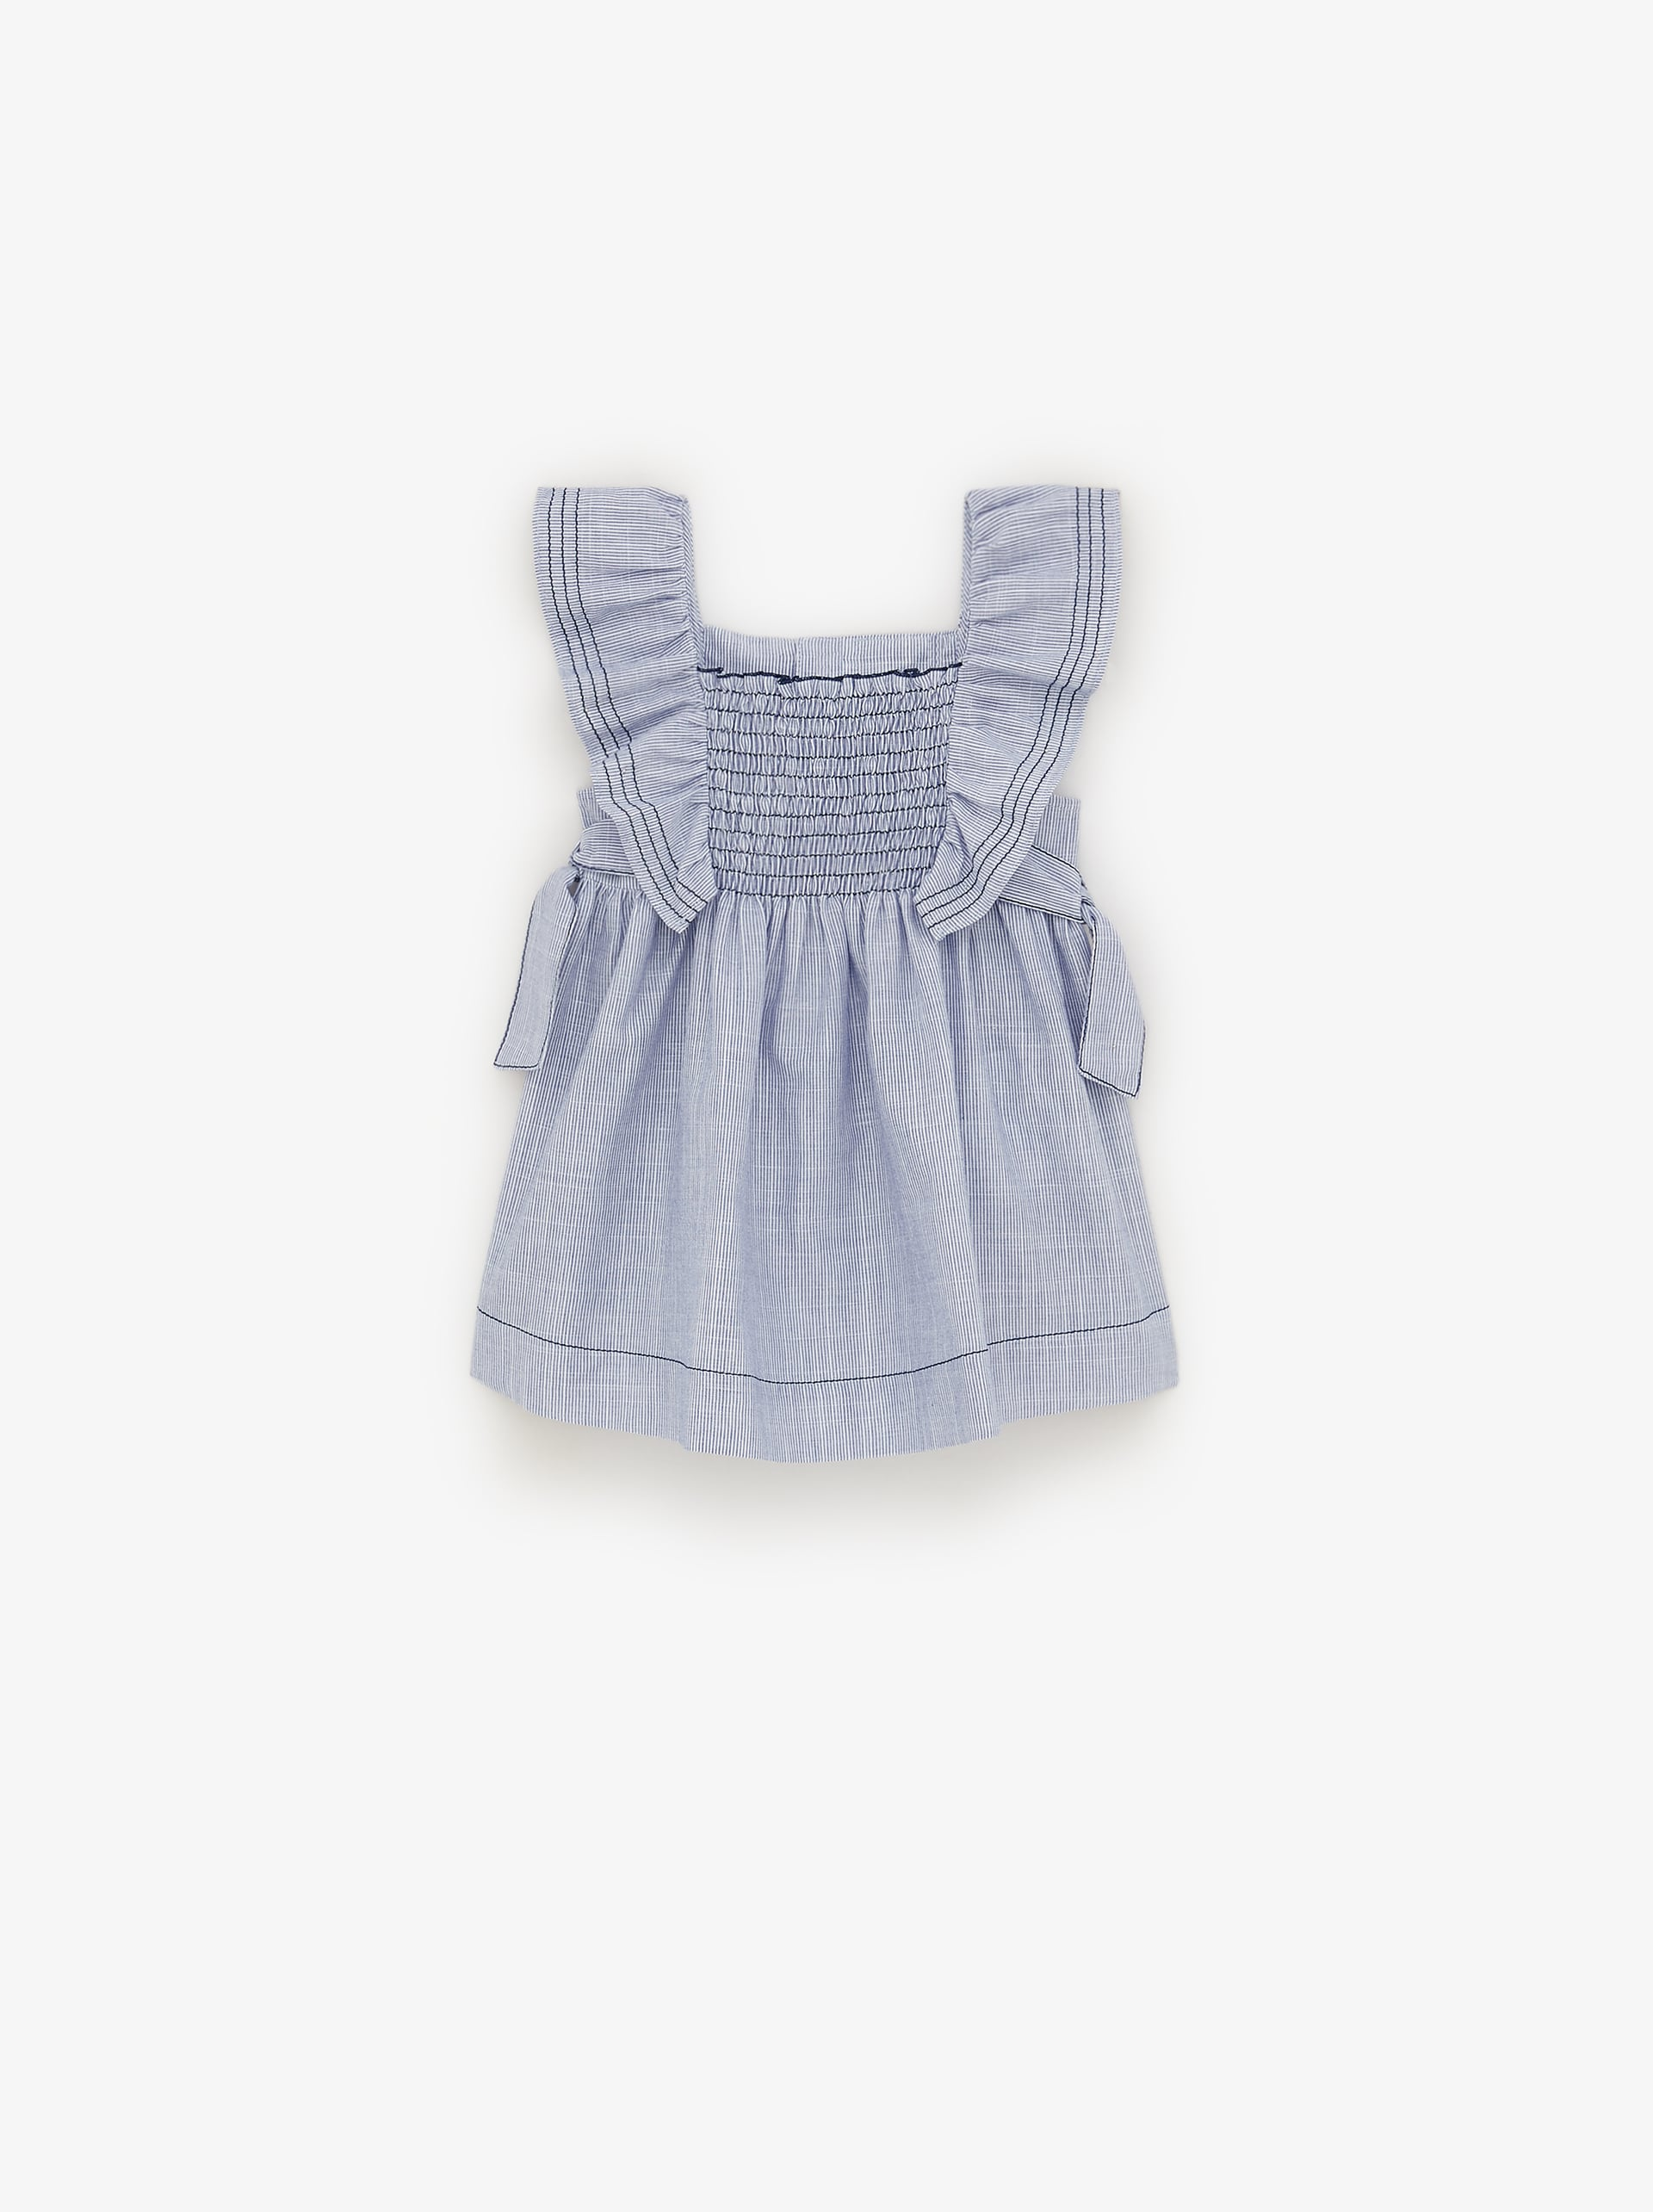 8cd3a0b89 RUFFLED DRESS - View All-DRESSES AND JUMPSUITS-BABY GIRL | 3 mth - 5 ...